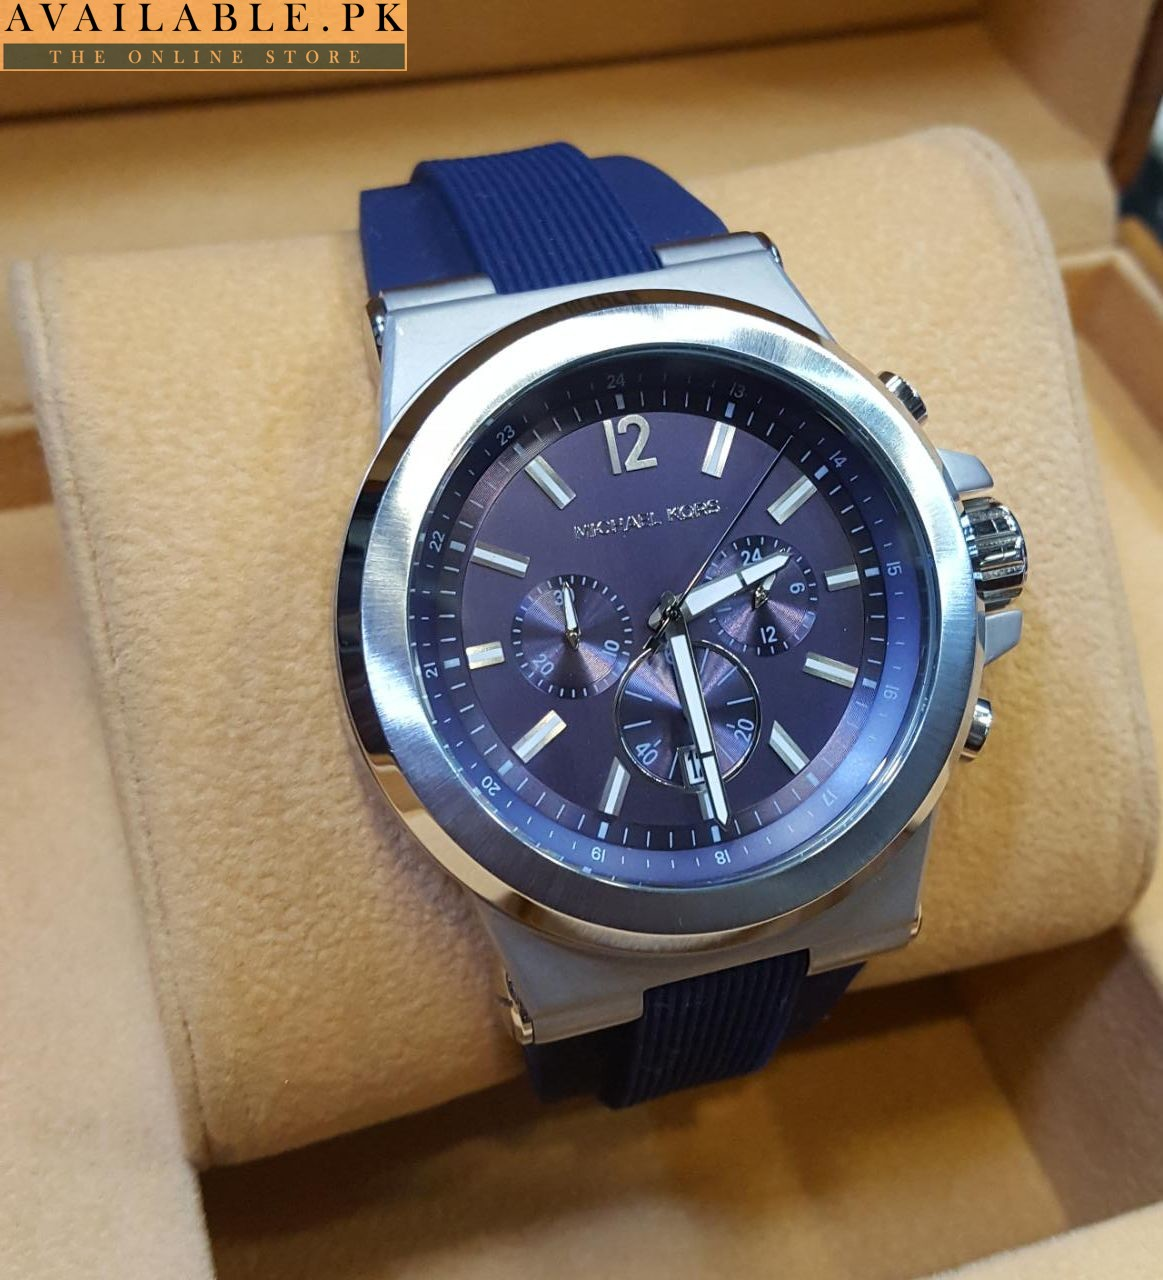 60c688ce568c Michael Kors Chronograph Dylan Navy Silicone Strap Watch 48mm MK8295 For Men  Price In Pakistan 2